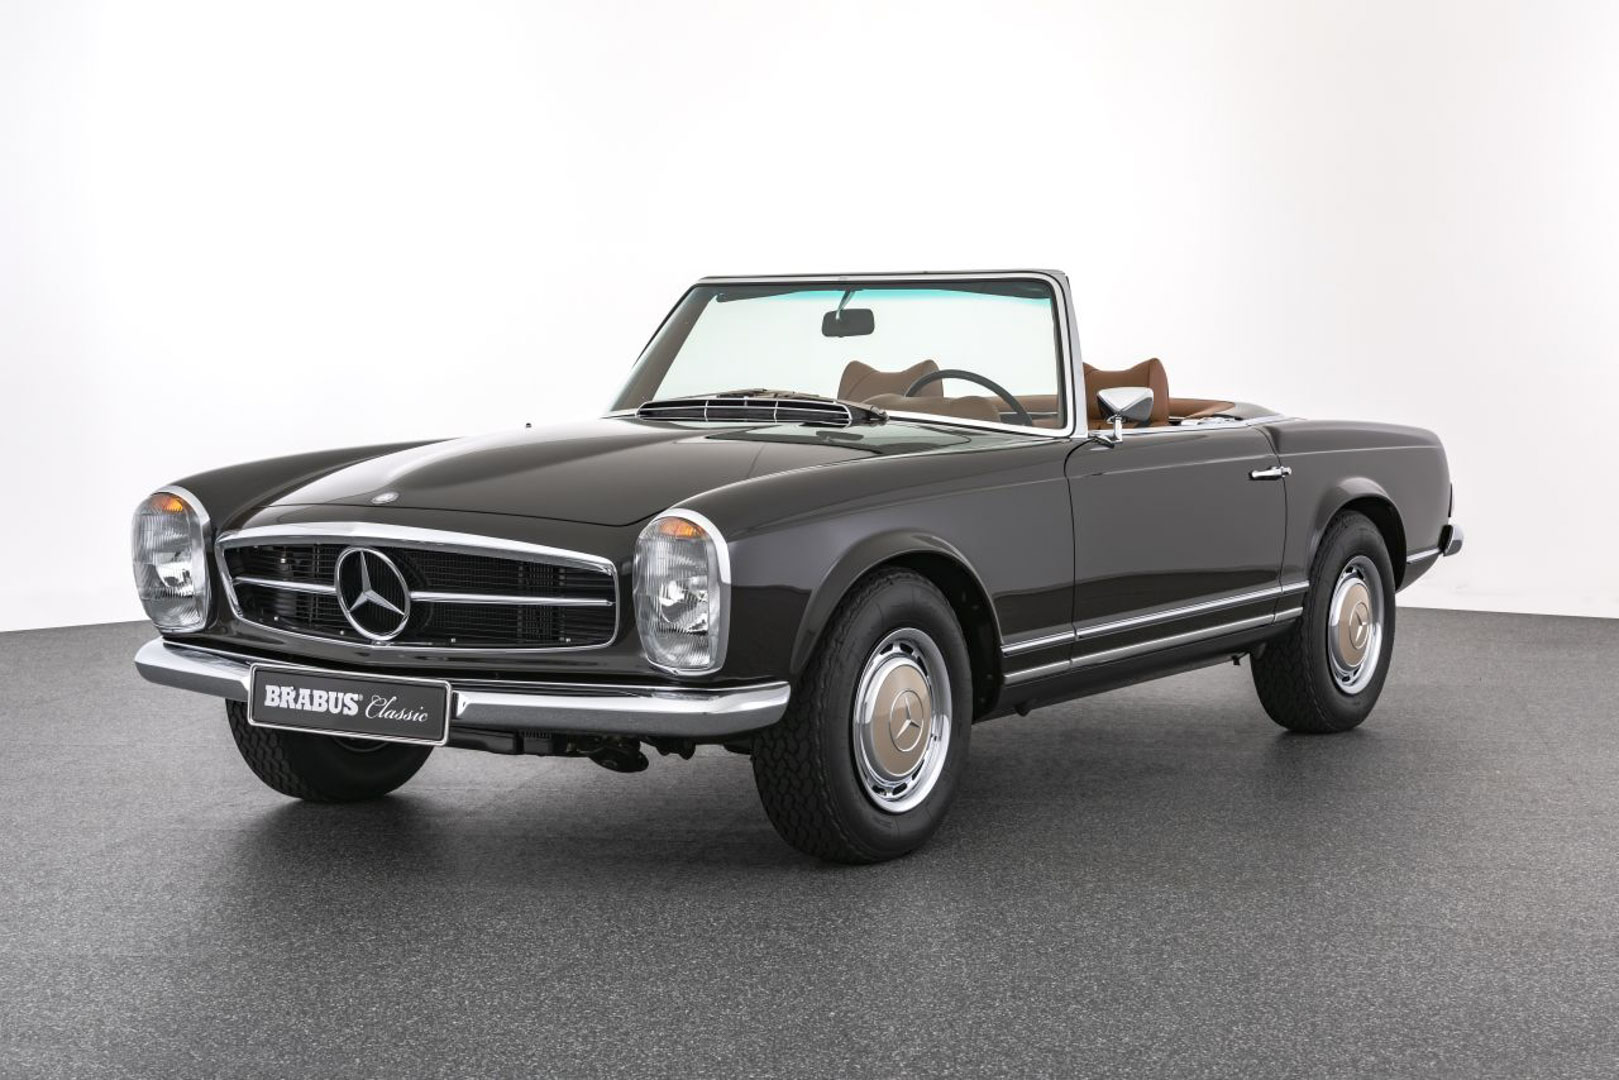 BRABUS Classic – 280 SL Pagoda (1971) – Tabacco Brown with cognac